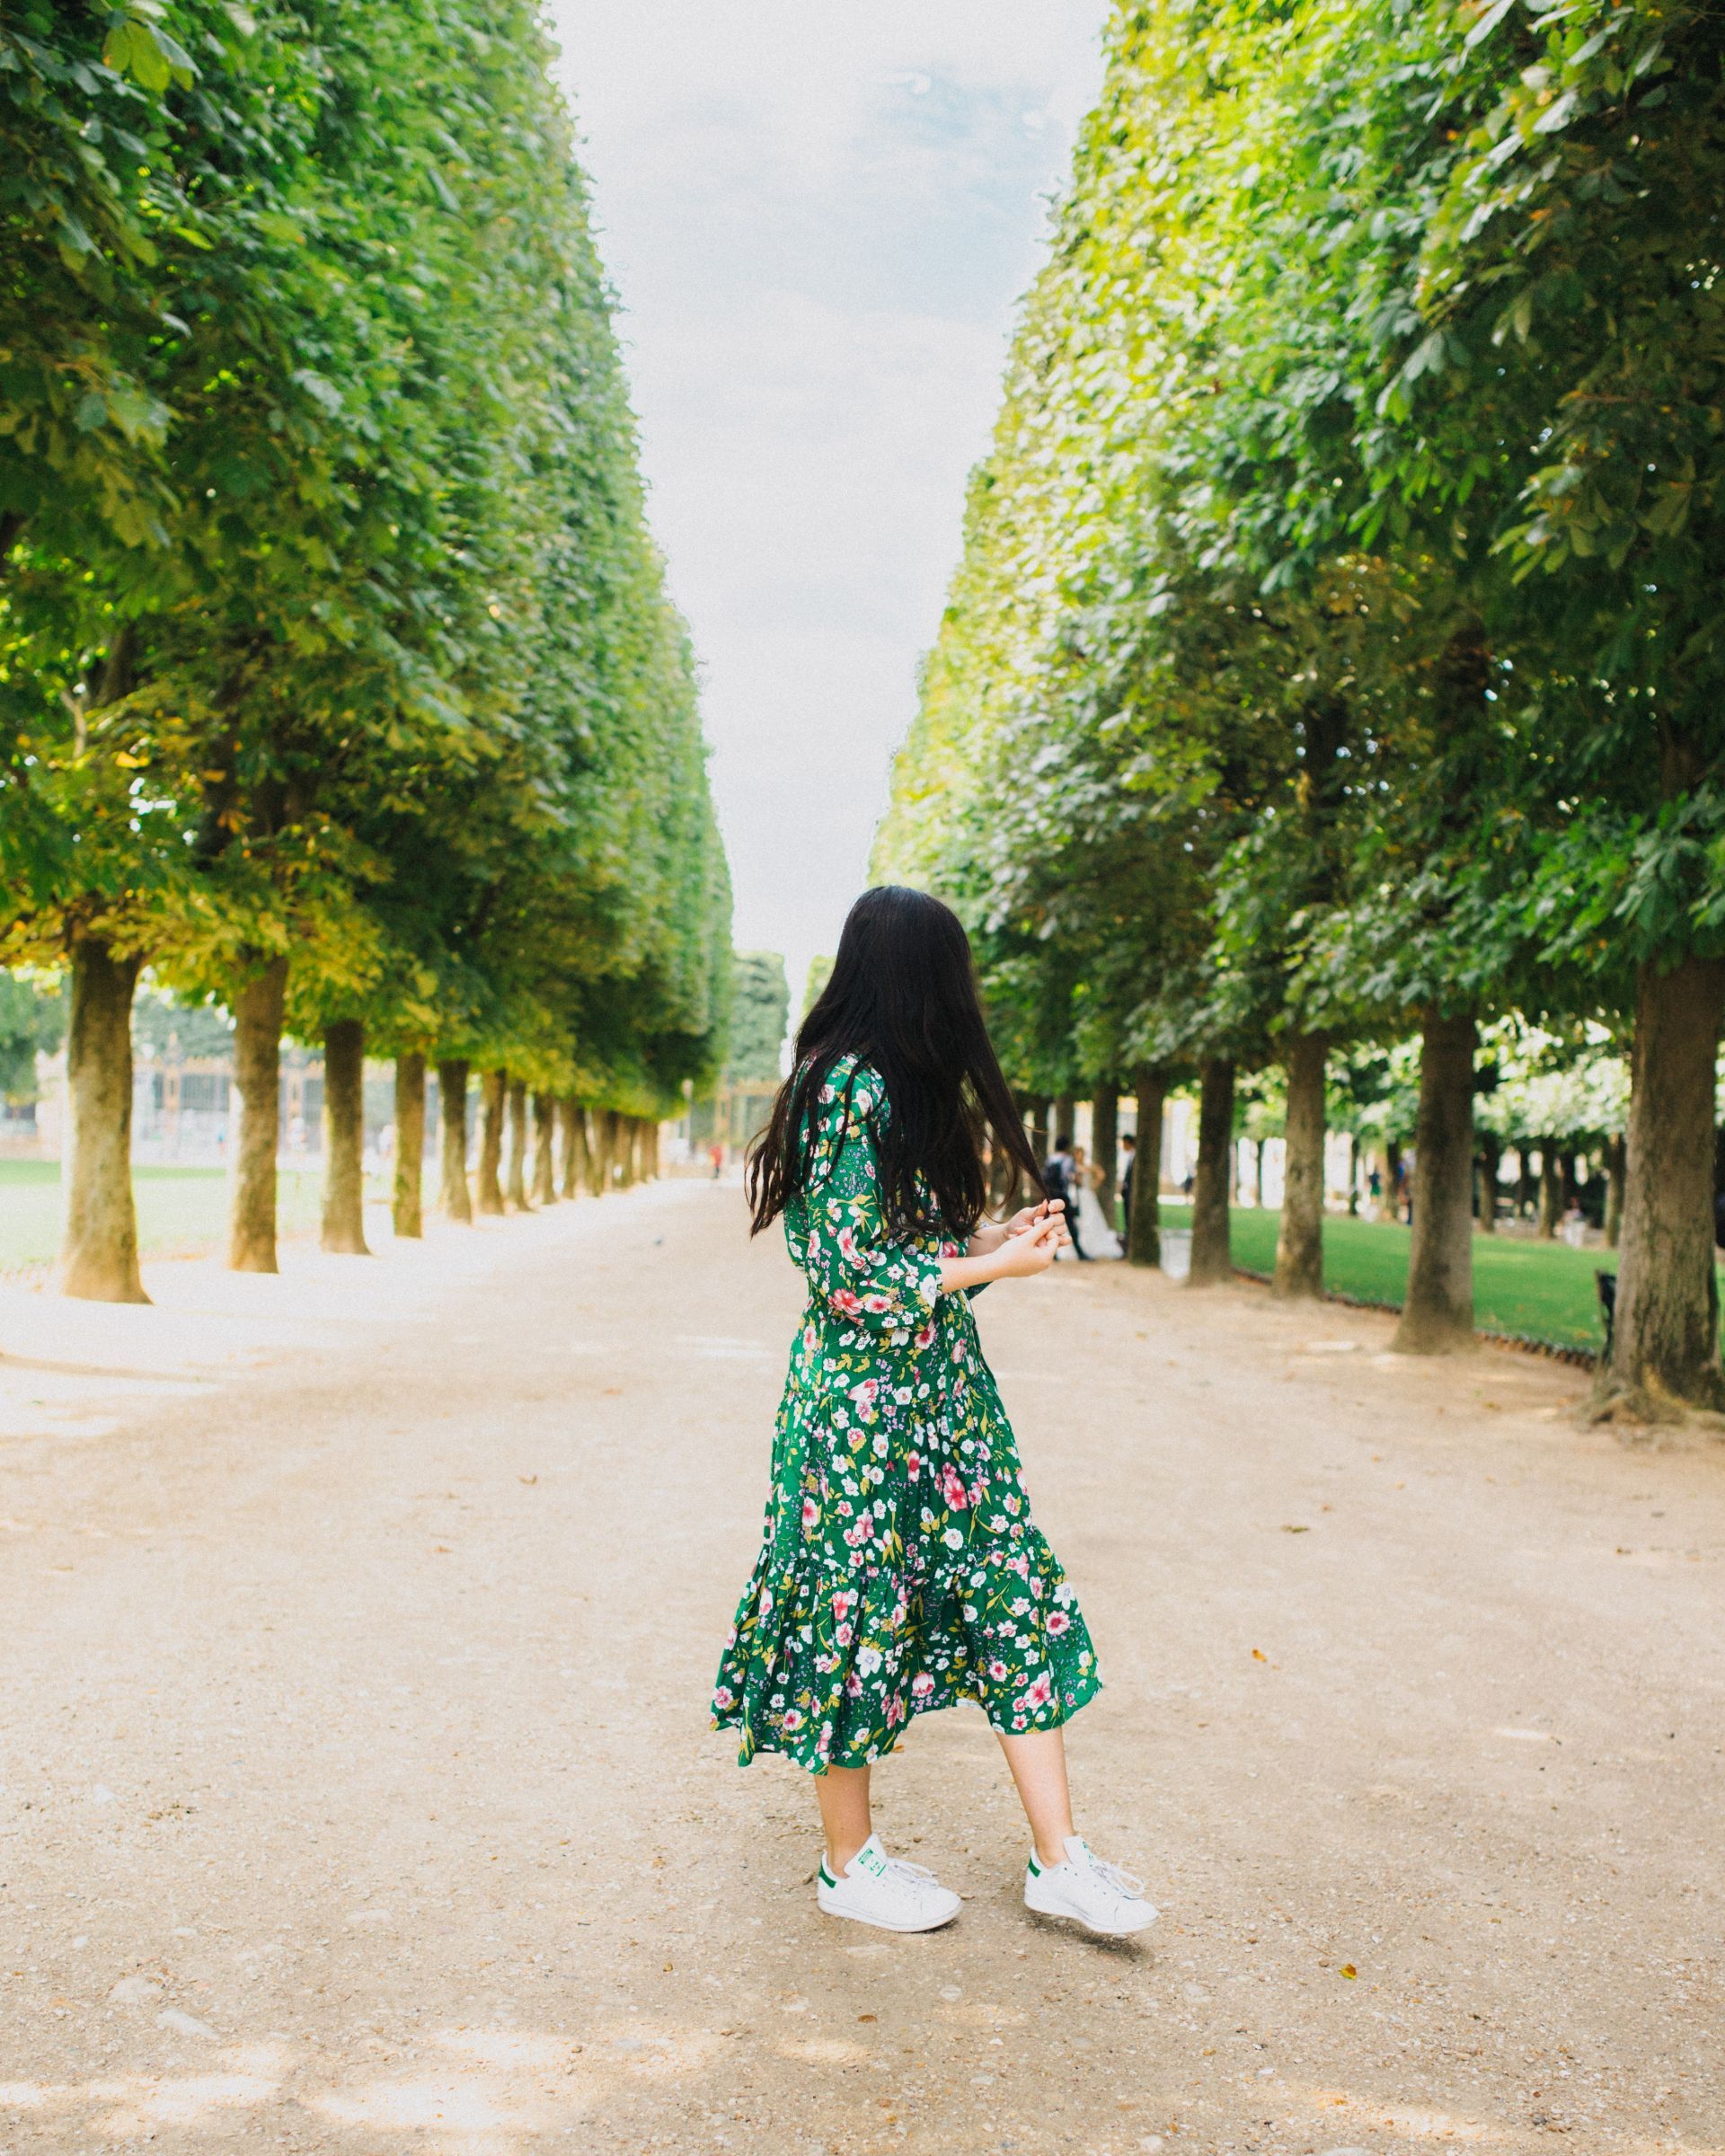 Urban Outfitters dress, Adidas Stan Smiths | From Paris, With Love: The Perfect Parisian Weekend Guide (+ the cutest Airbnb!) | SarahMichiko.com